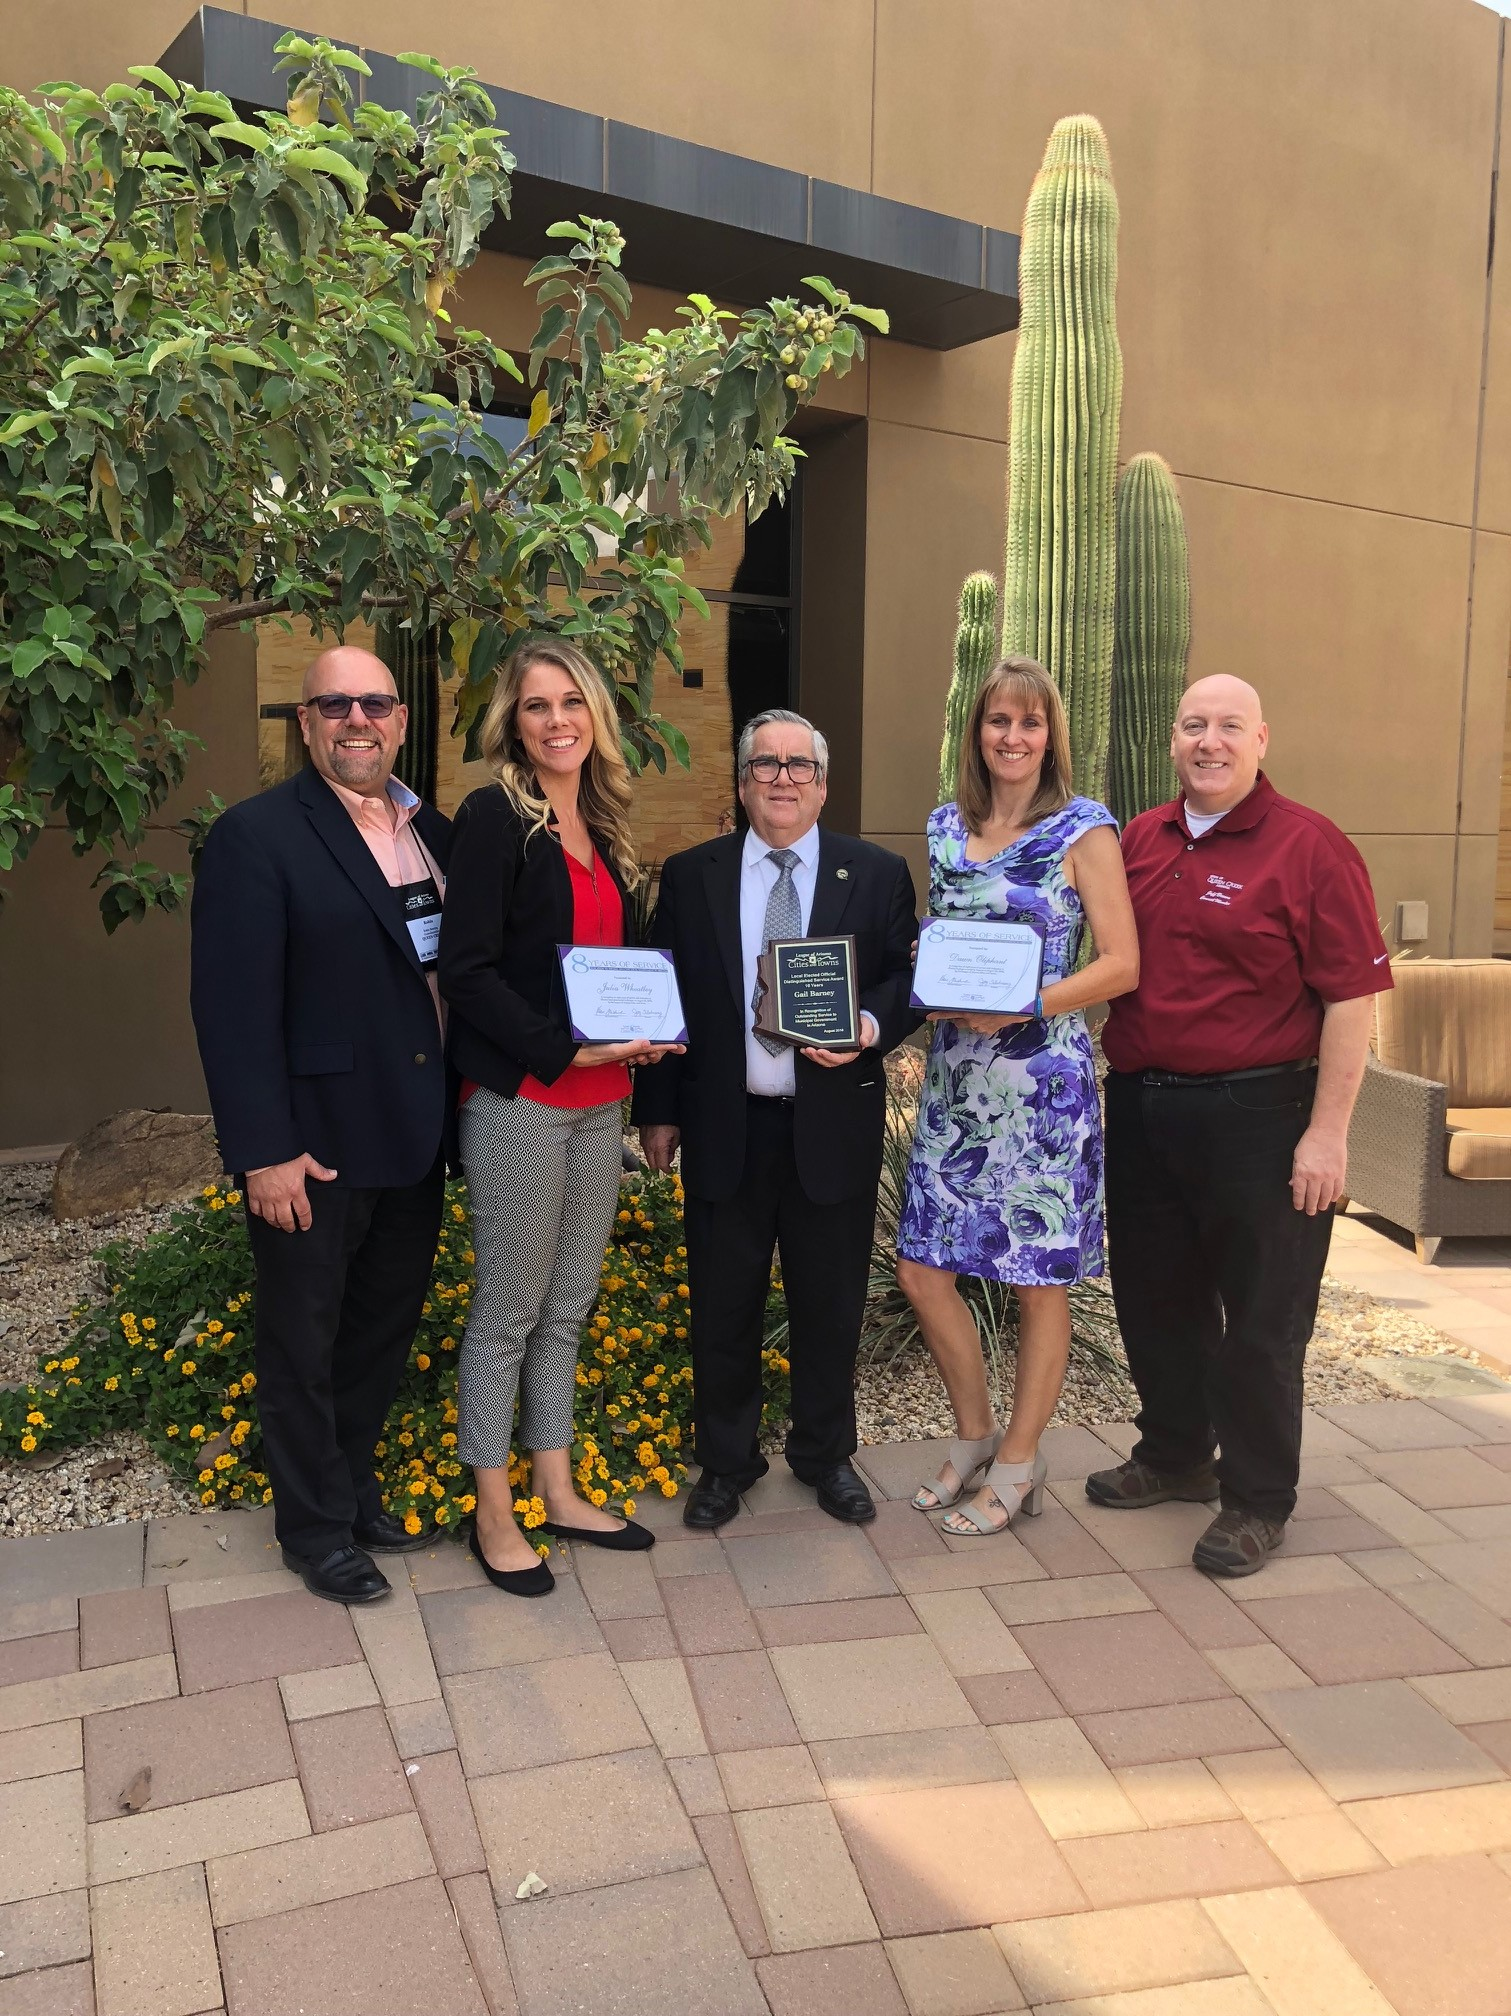 Mayor Barney with Council Members Benning, Brown, Oliphant and Wheatley at the Awards Luncheon at the League of Arizona Cities and Towns Conference on August 23